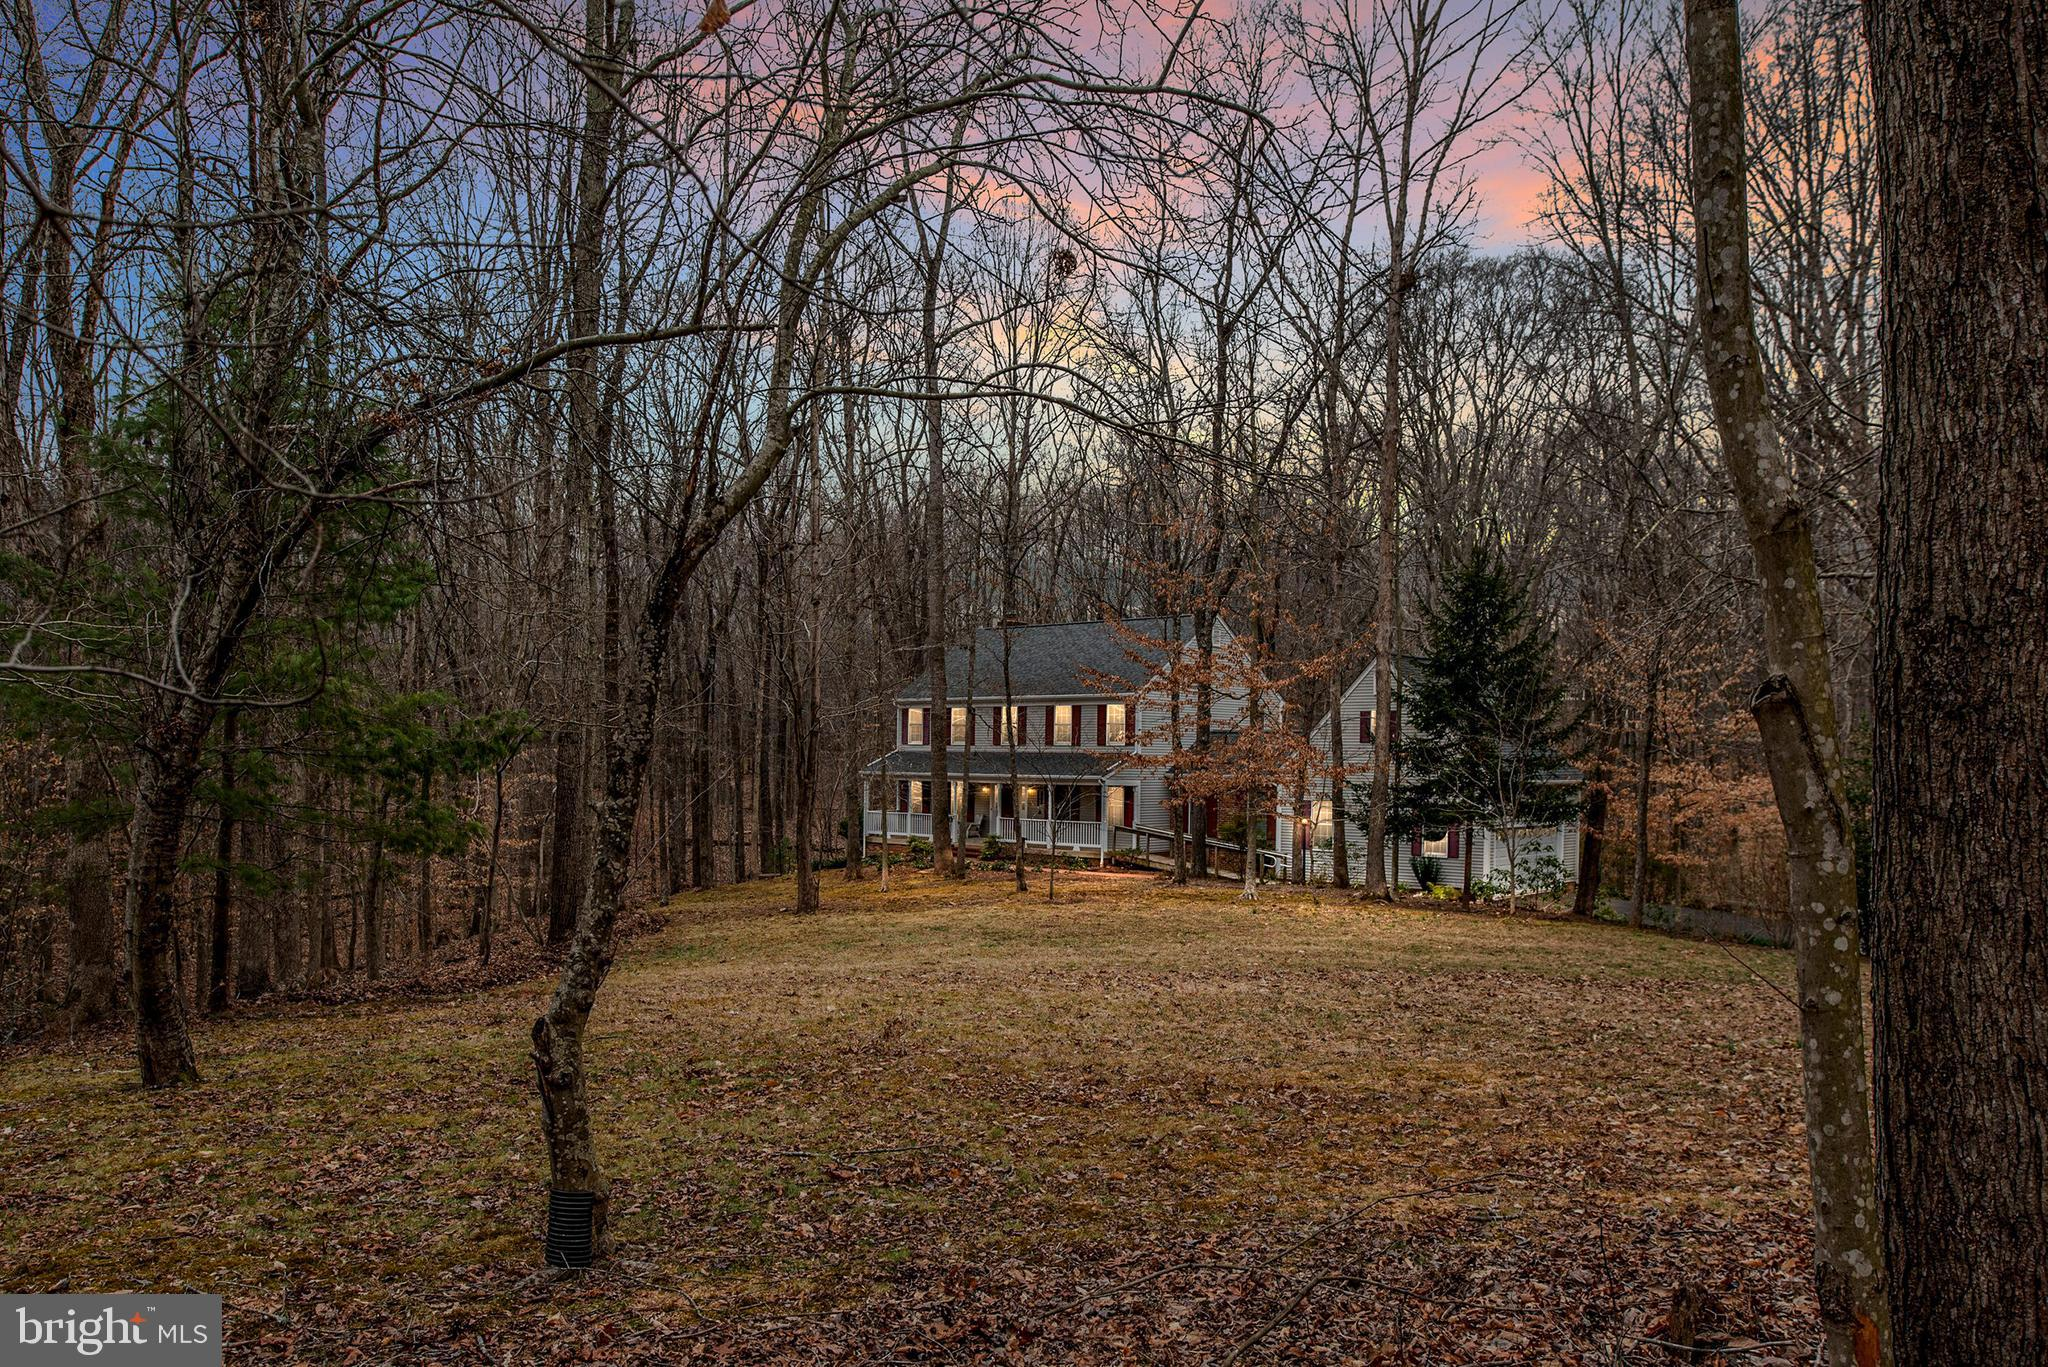 The perfect 64 home subdivision with single entry road and economical natural gas available.  This 5